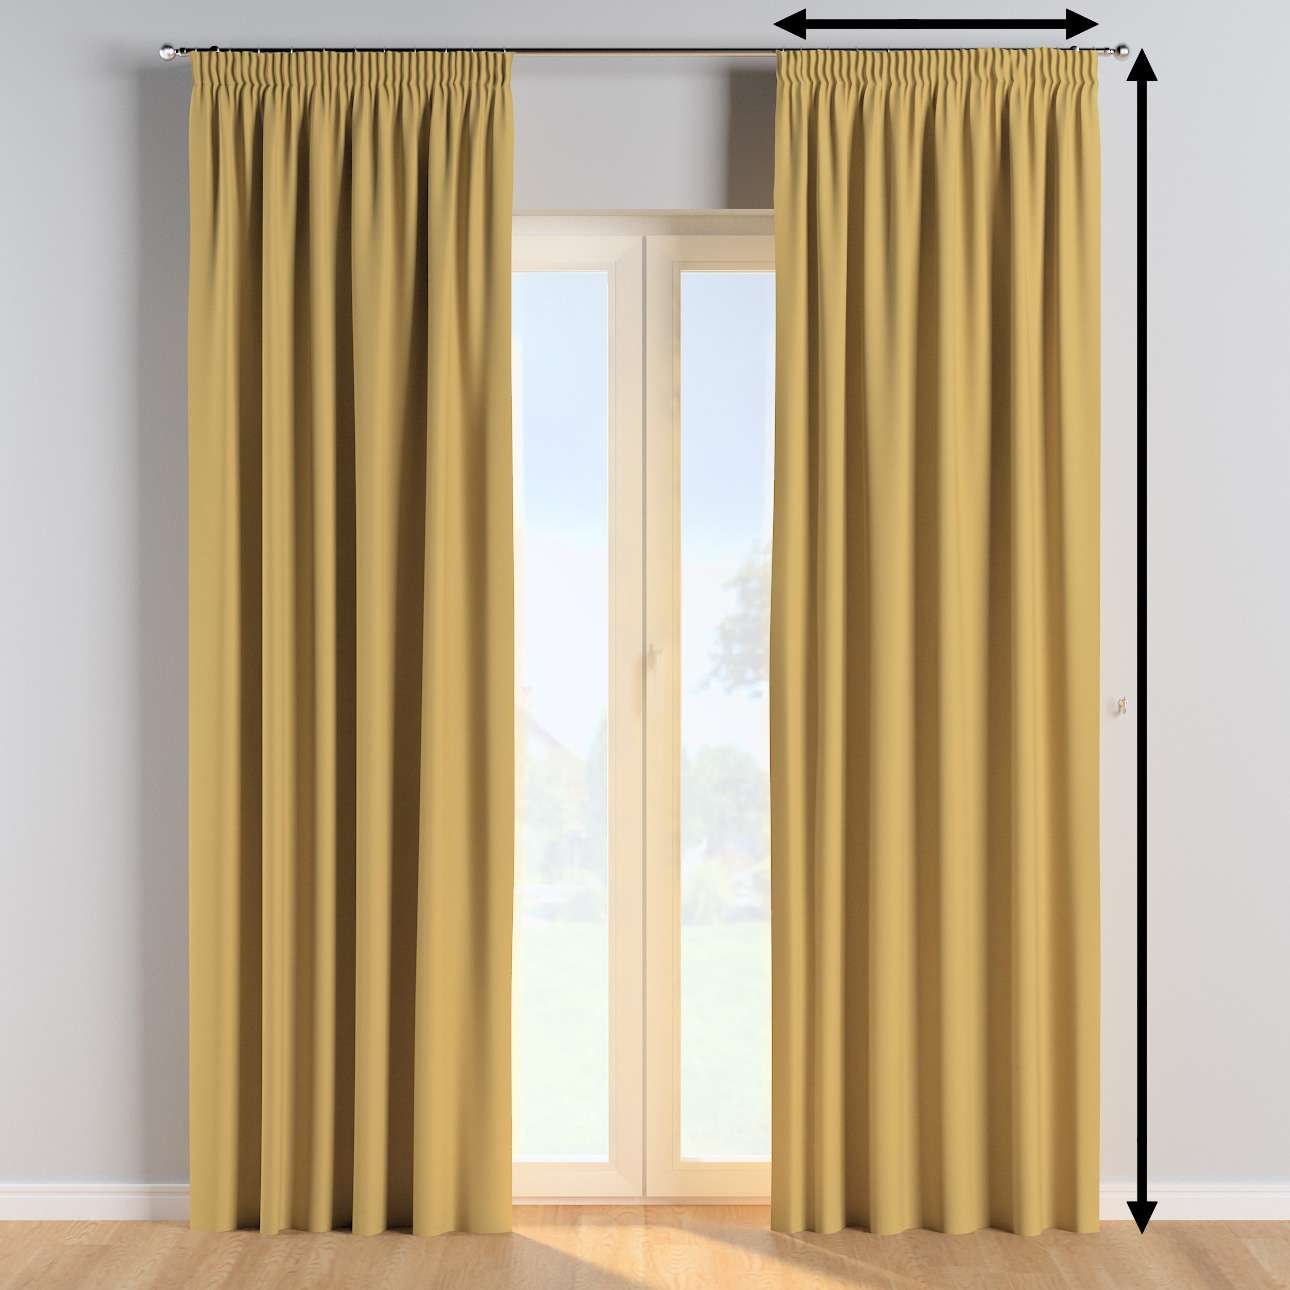 Pencil pleat curtains in collection Cotton Story, fabric: 702-41